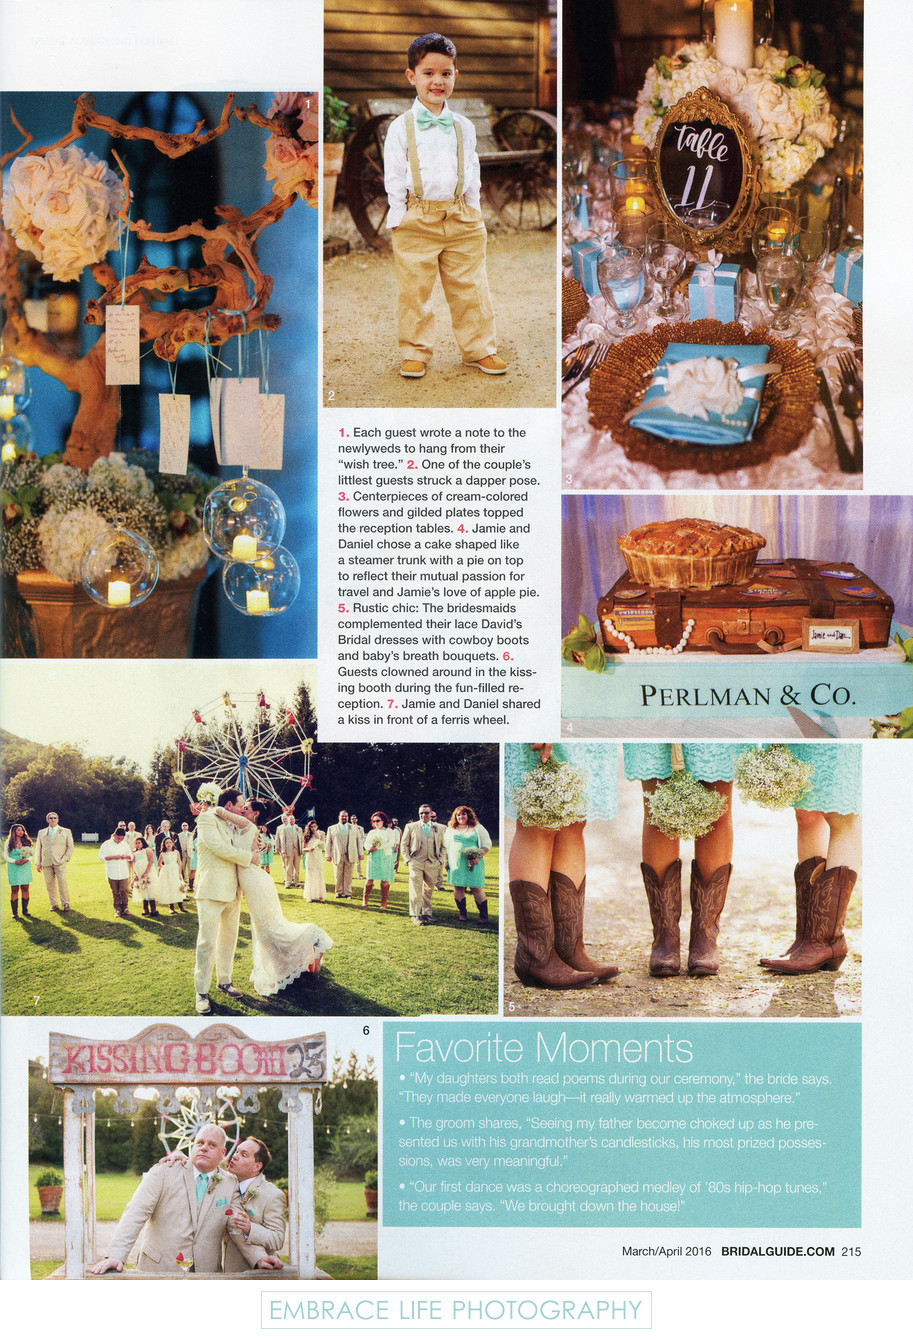 Tiffany Blue and Rustic Wedding Details - Bridal Guide